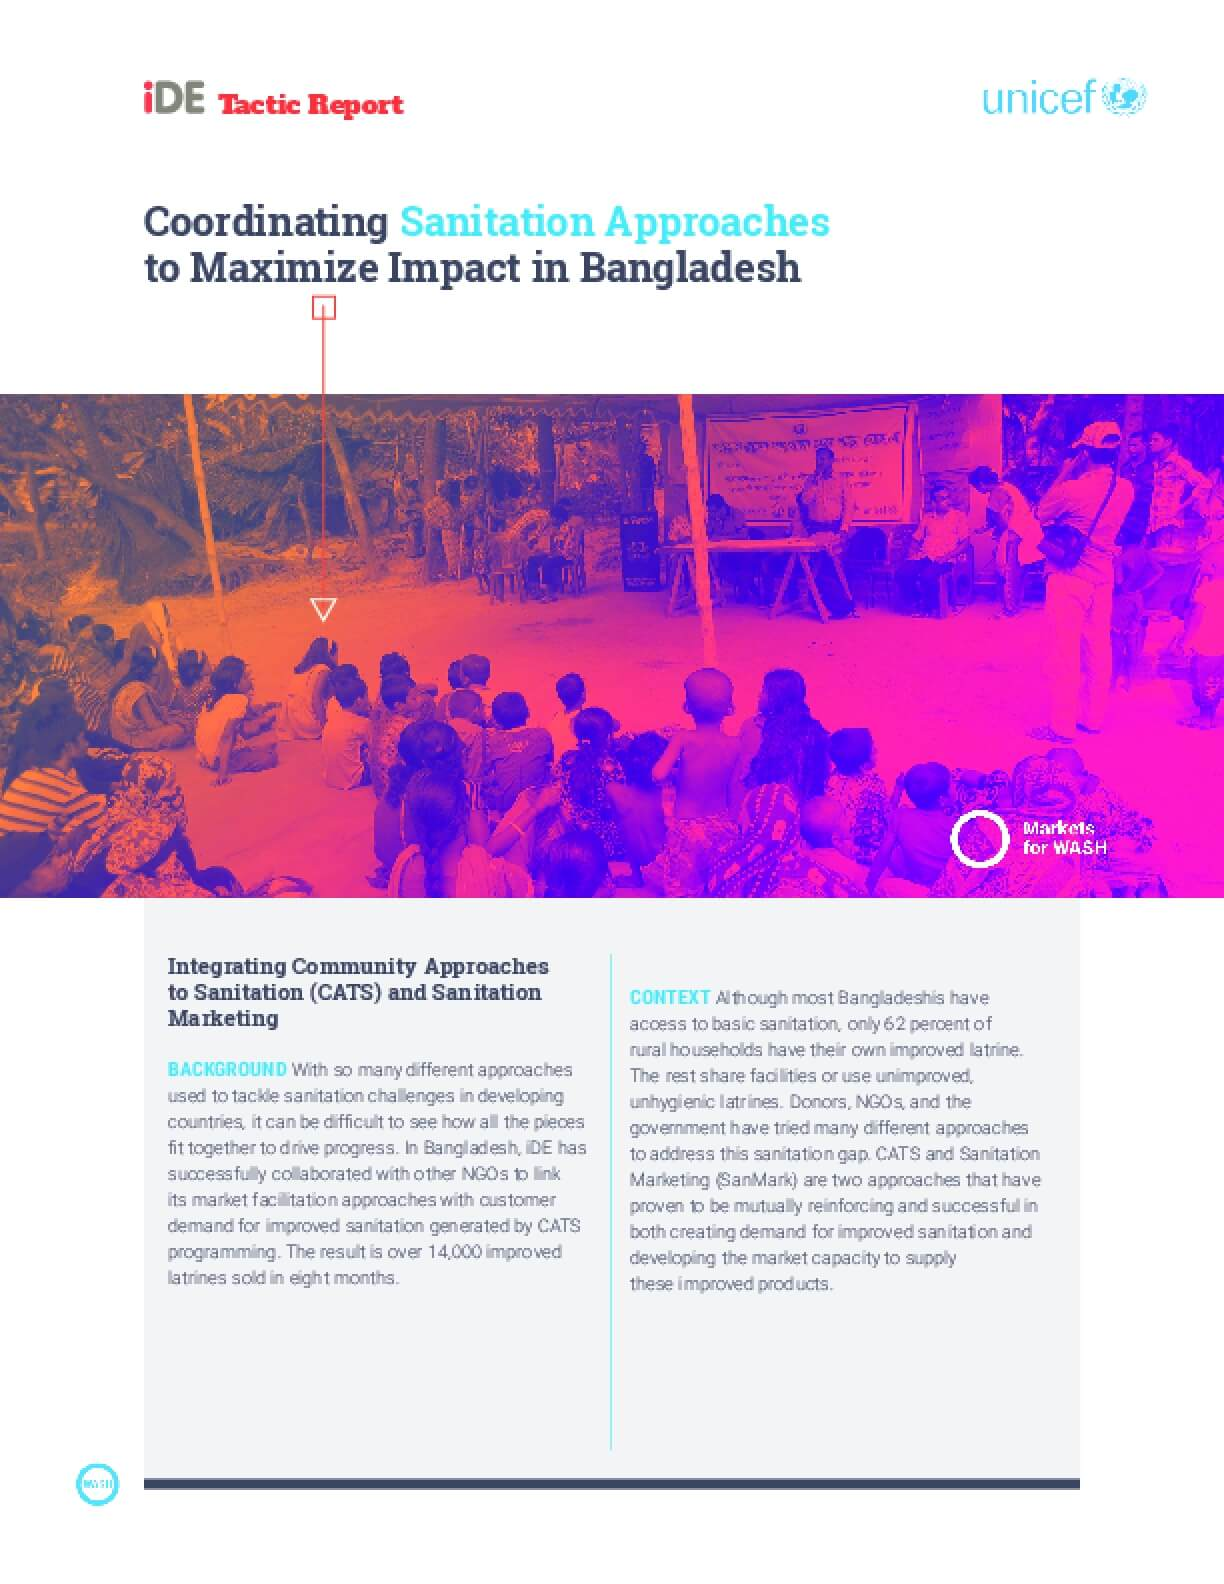 Coordinating Sanitation Approaches to Maximize impact in Bangladesh